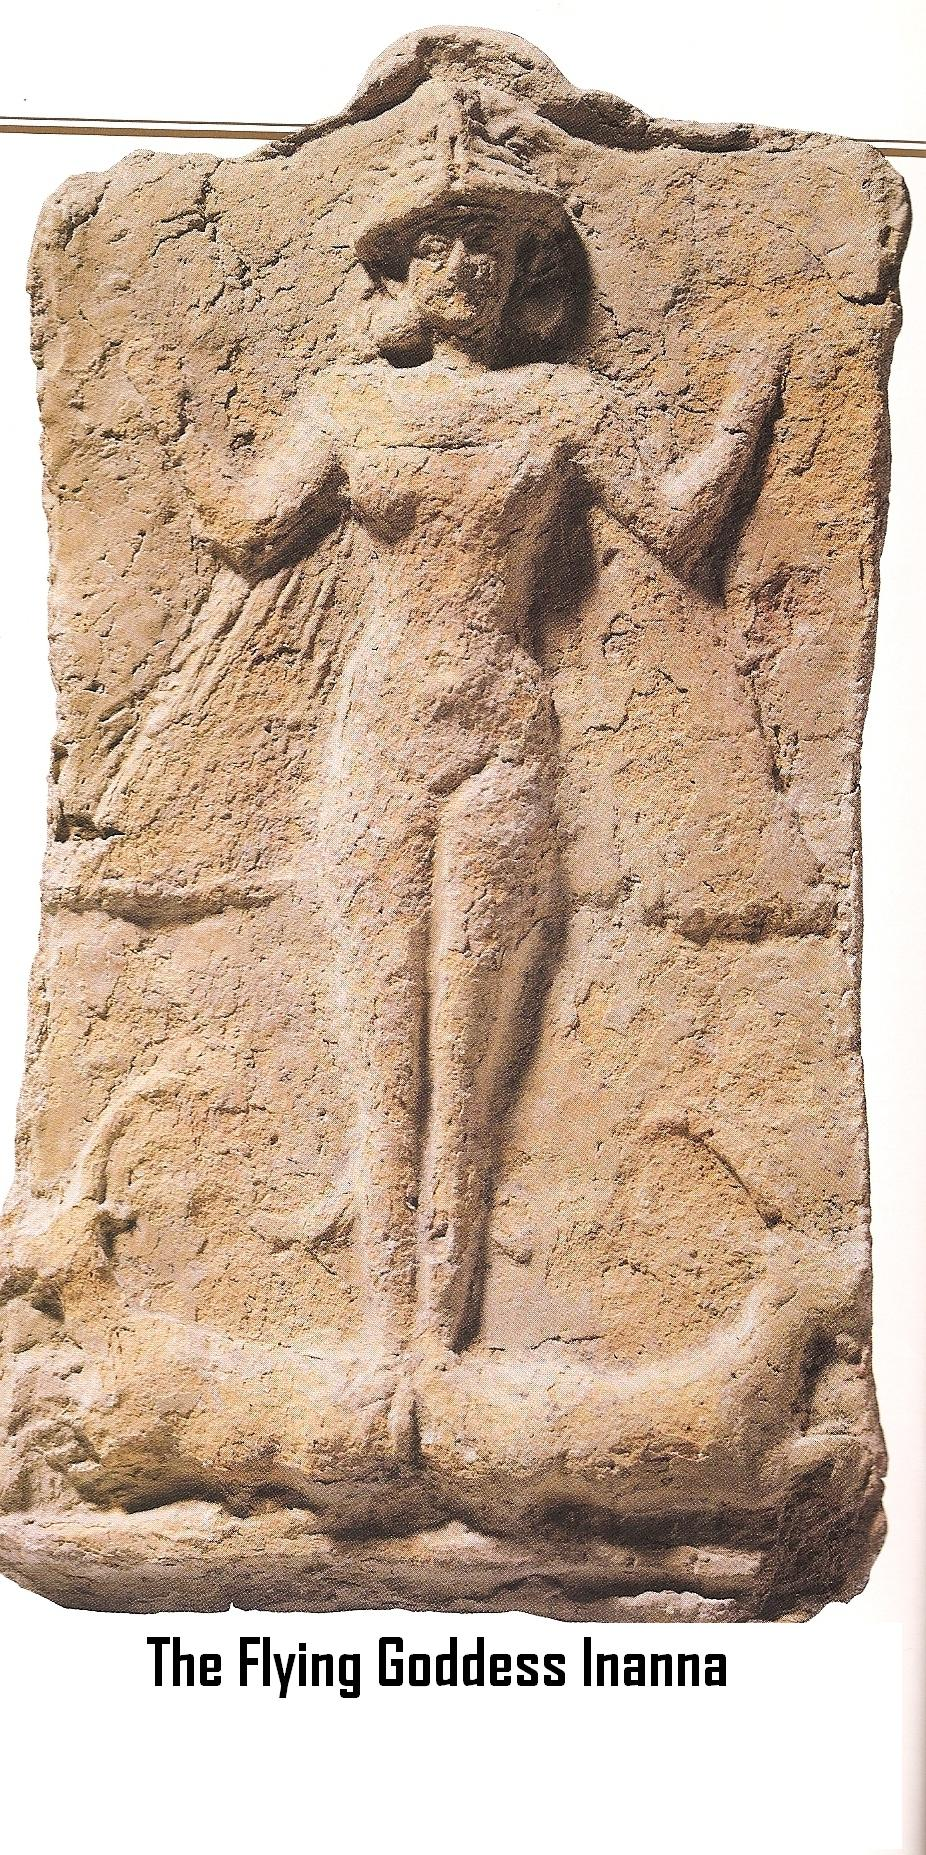 4b - another ancient artefact stele of nude flying goddess Inanna, the daughter to Nannar, the patron god of Ur, the granddaughter of Enlil, the Earth Colony Commander & King Anu's heir of planet Nibiru with all its holdings, it was her beauty in a debate by the gods that caused the events that lead to the Greek envasion of Ancient Troy, where the irresistably beautiful Helena was held